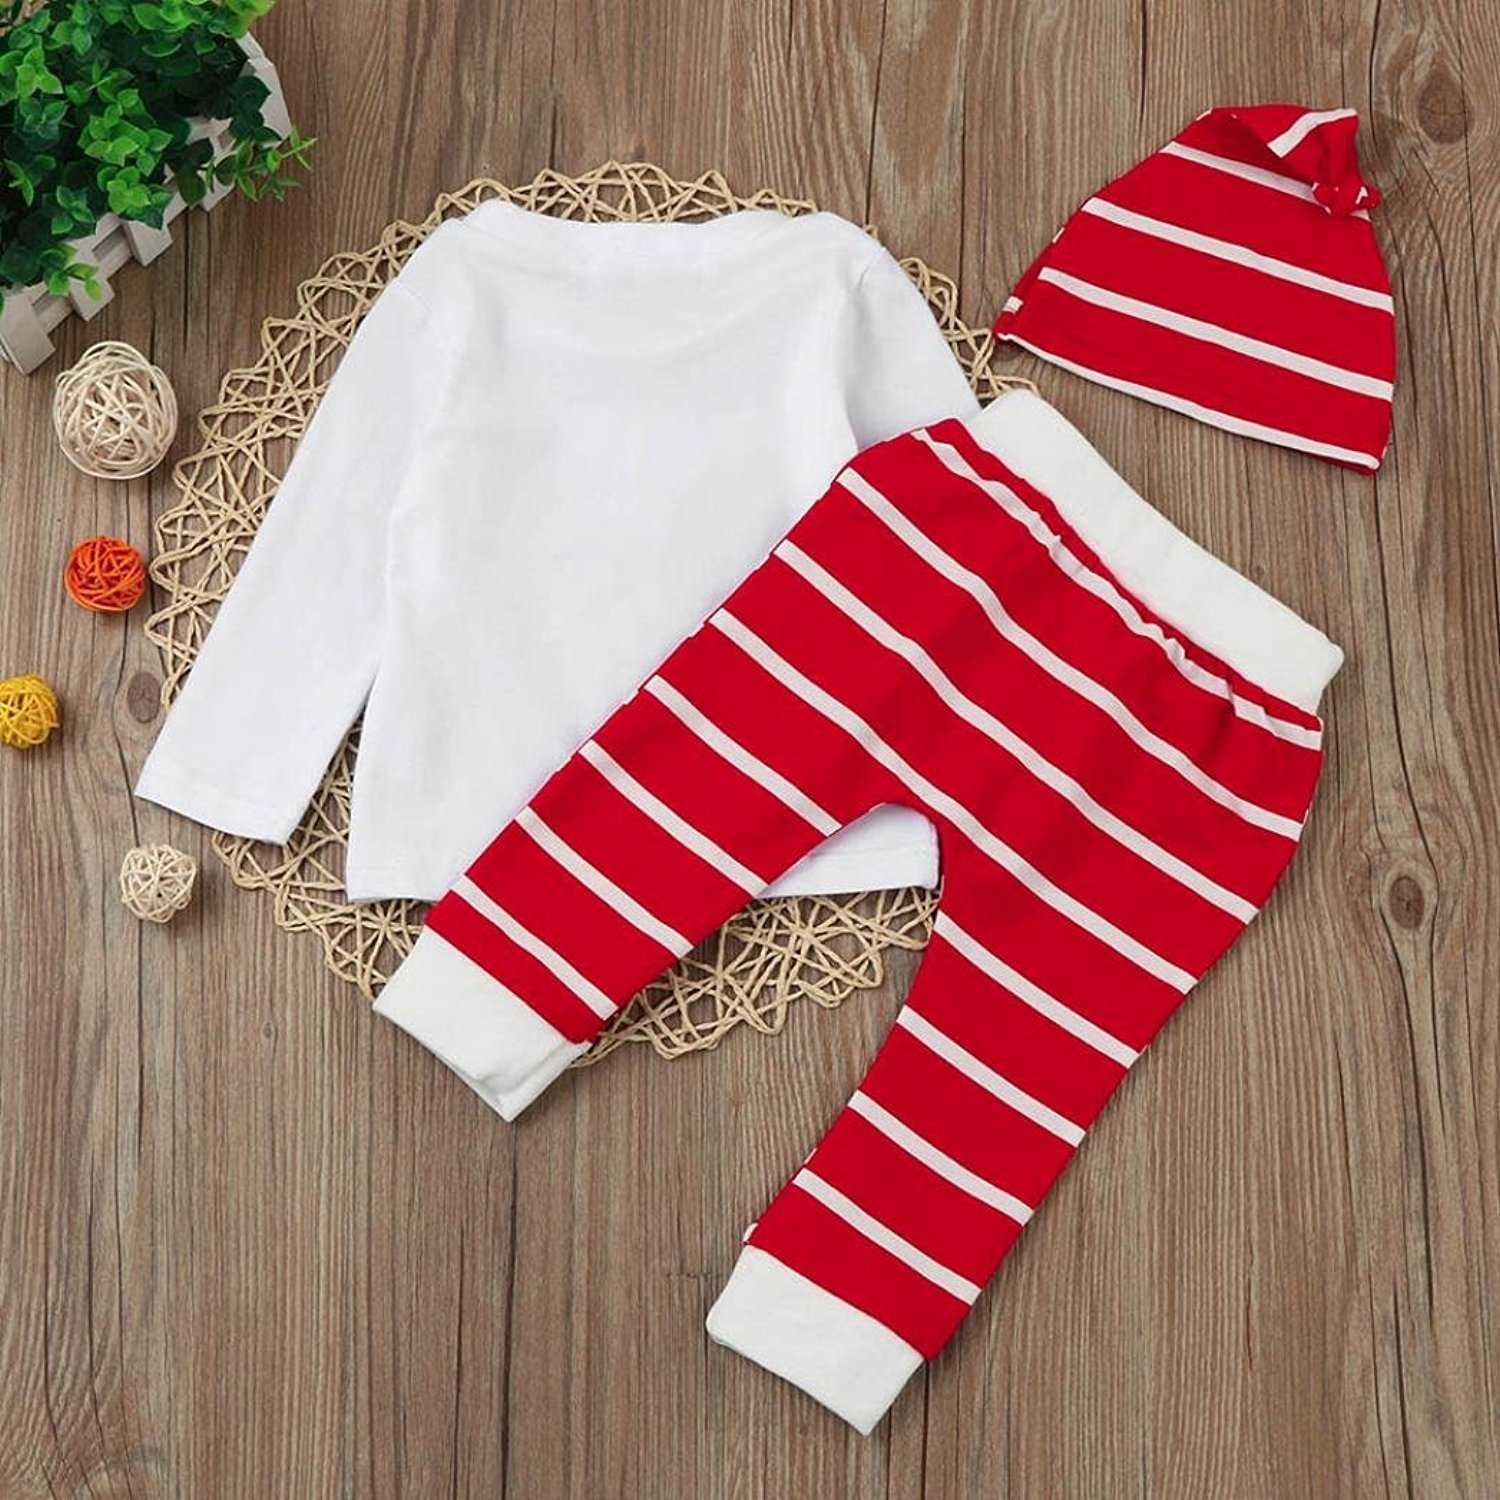 f7b25f547 Kids Clothing Sets,SetMei Newborn Baby Boy Girl Christmas Deer Print Tops+ Pant+Cap Outfits Clothes Set For 0-2 Years old: Amazon.co.uk: Clothing